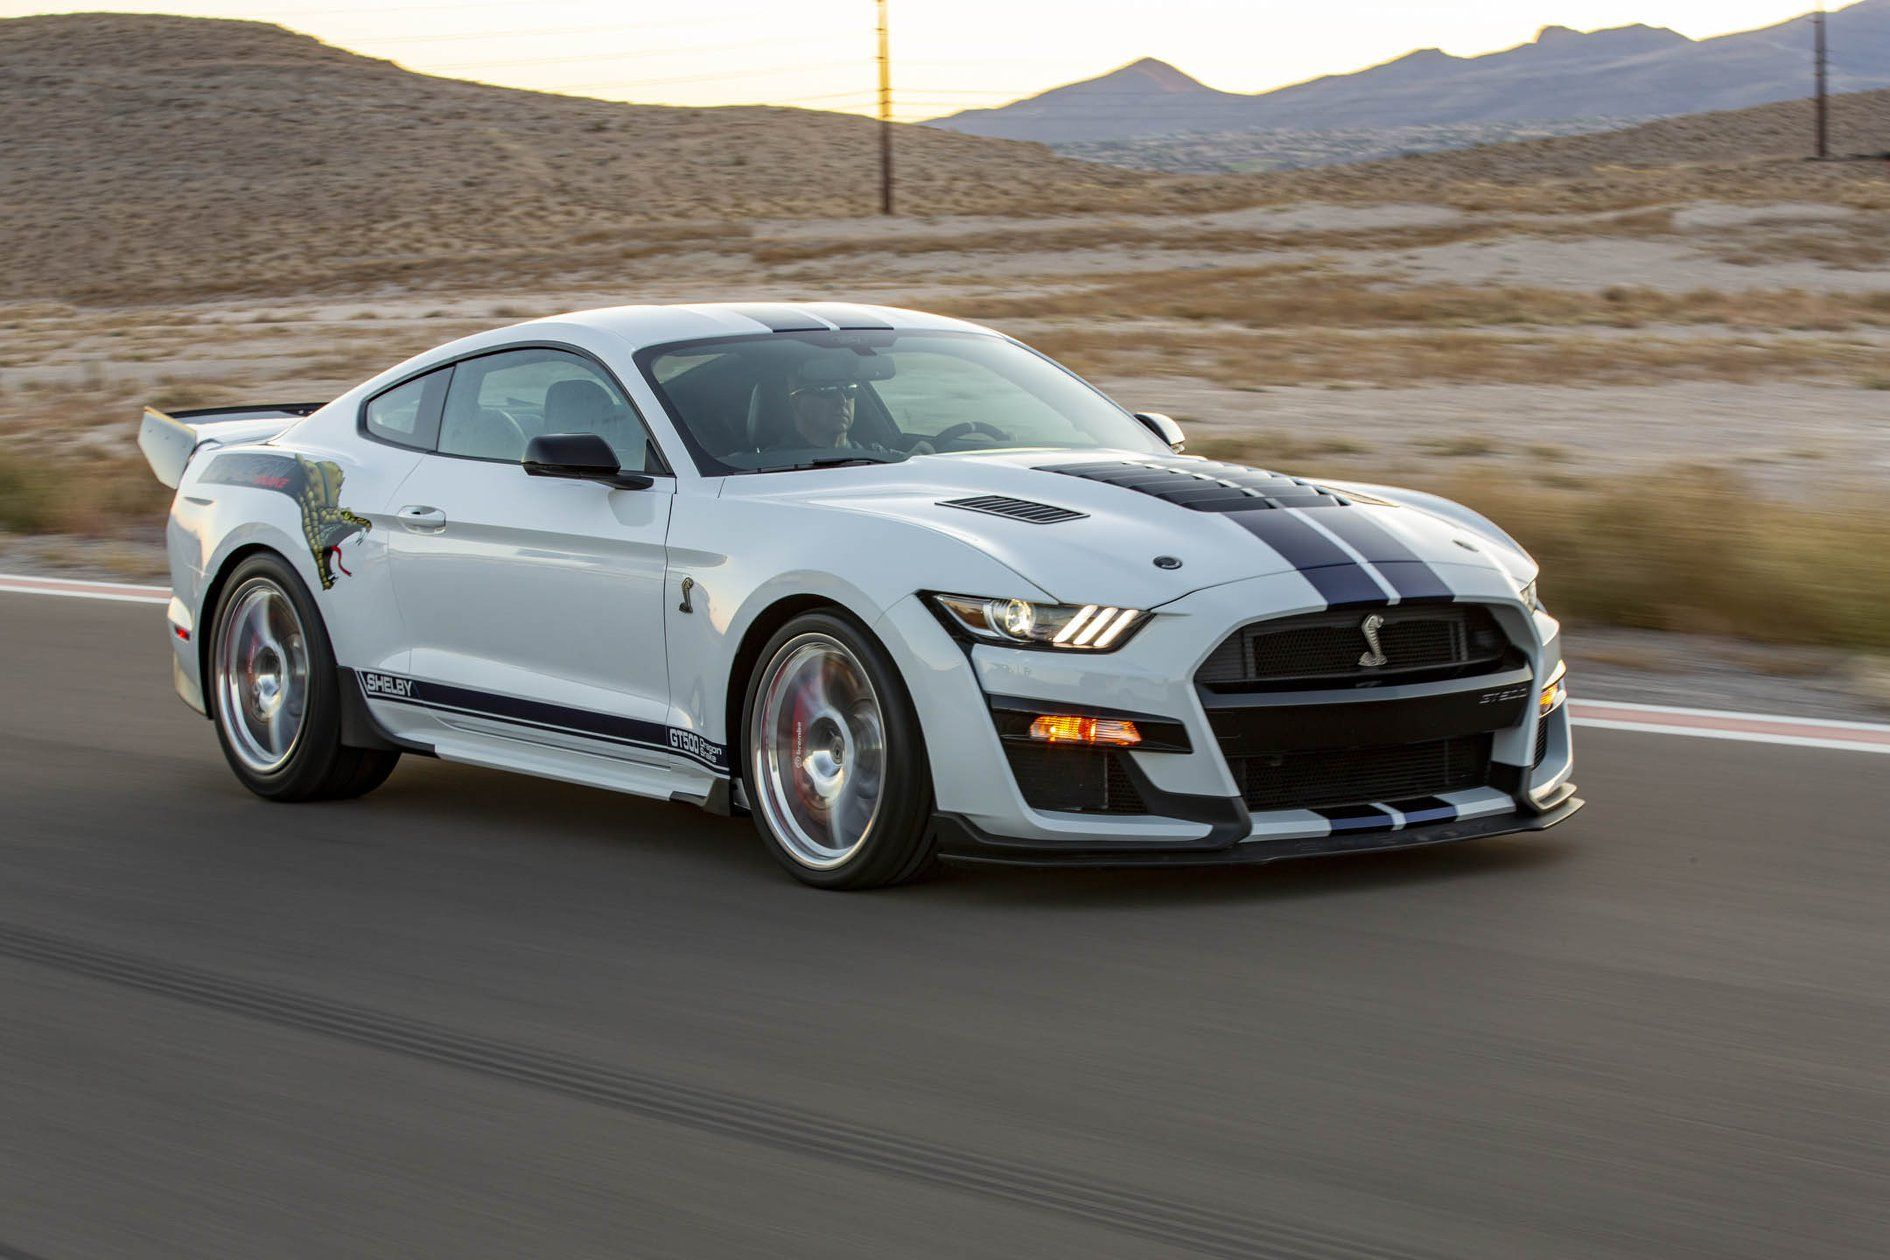 2020 Ford Shelby Gt500 Dragon Snake Top Speed Shelby Gt500 Ford Mustang Shelby Gt500 Ford Mustang Shelby